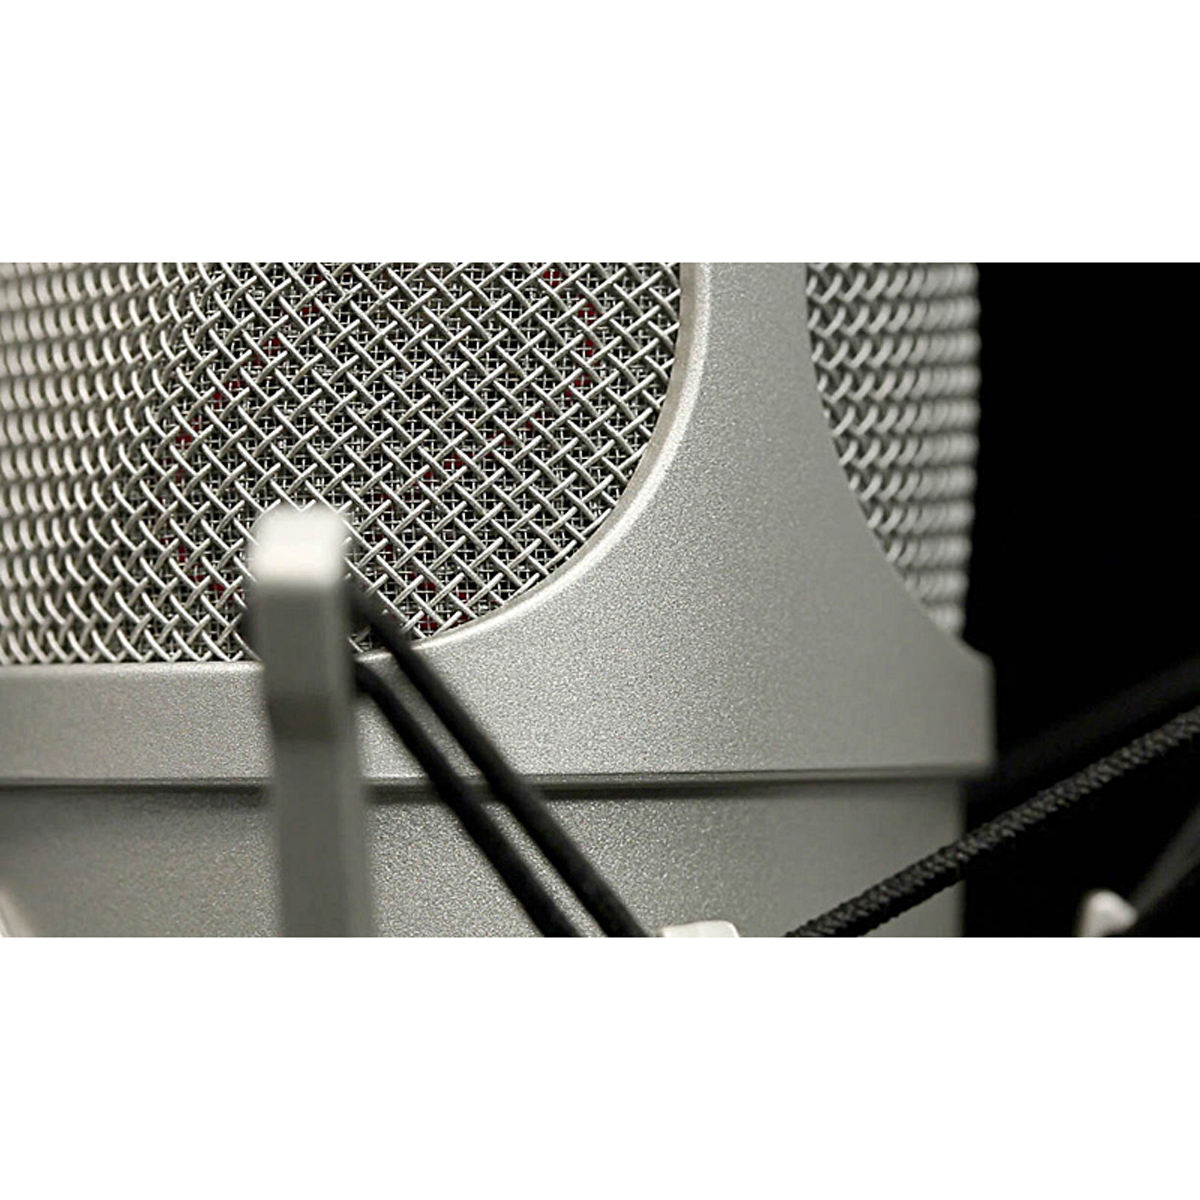 Neumann Tlm 107 R Condenser Microphone Sonic Circus Power Pc Microphones From P48 Or Phantom 48 Volts